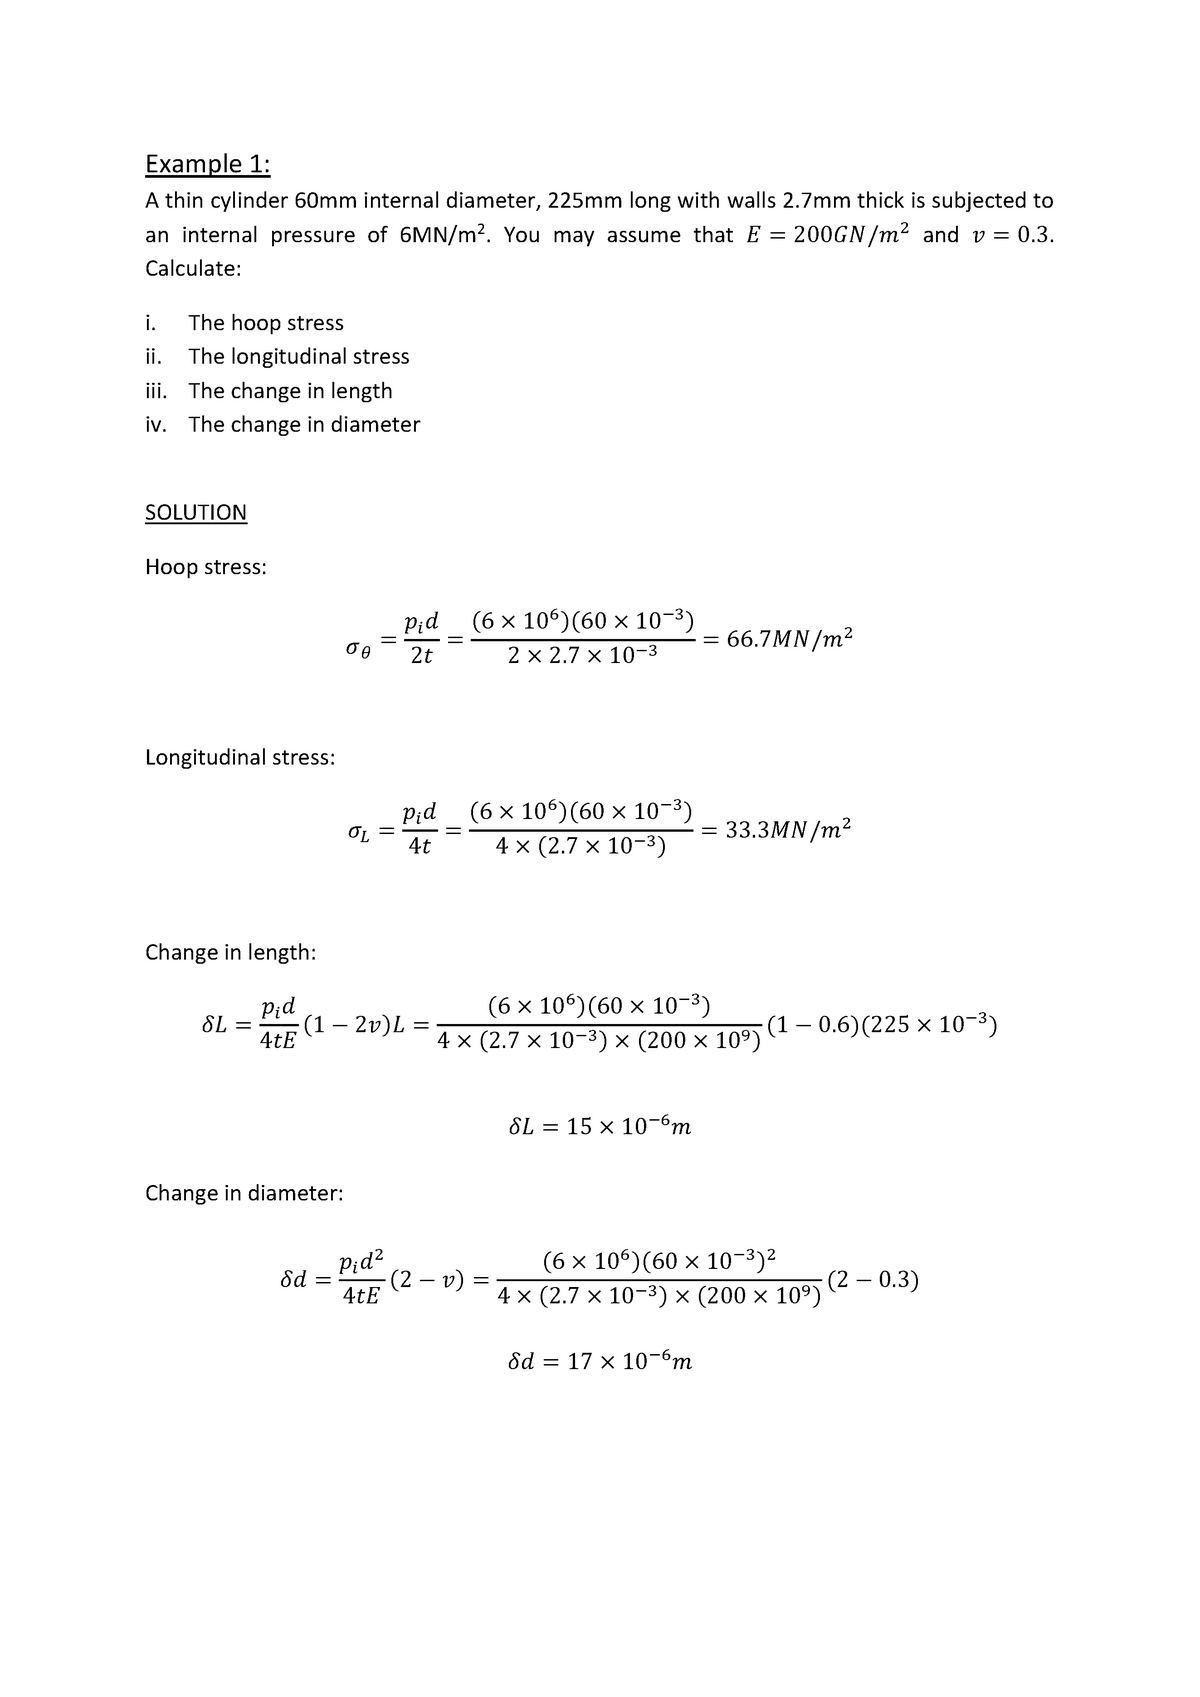 Example 1 with solution for cylinders - EG-262: Stress